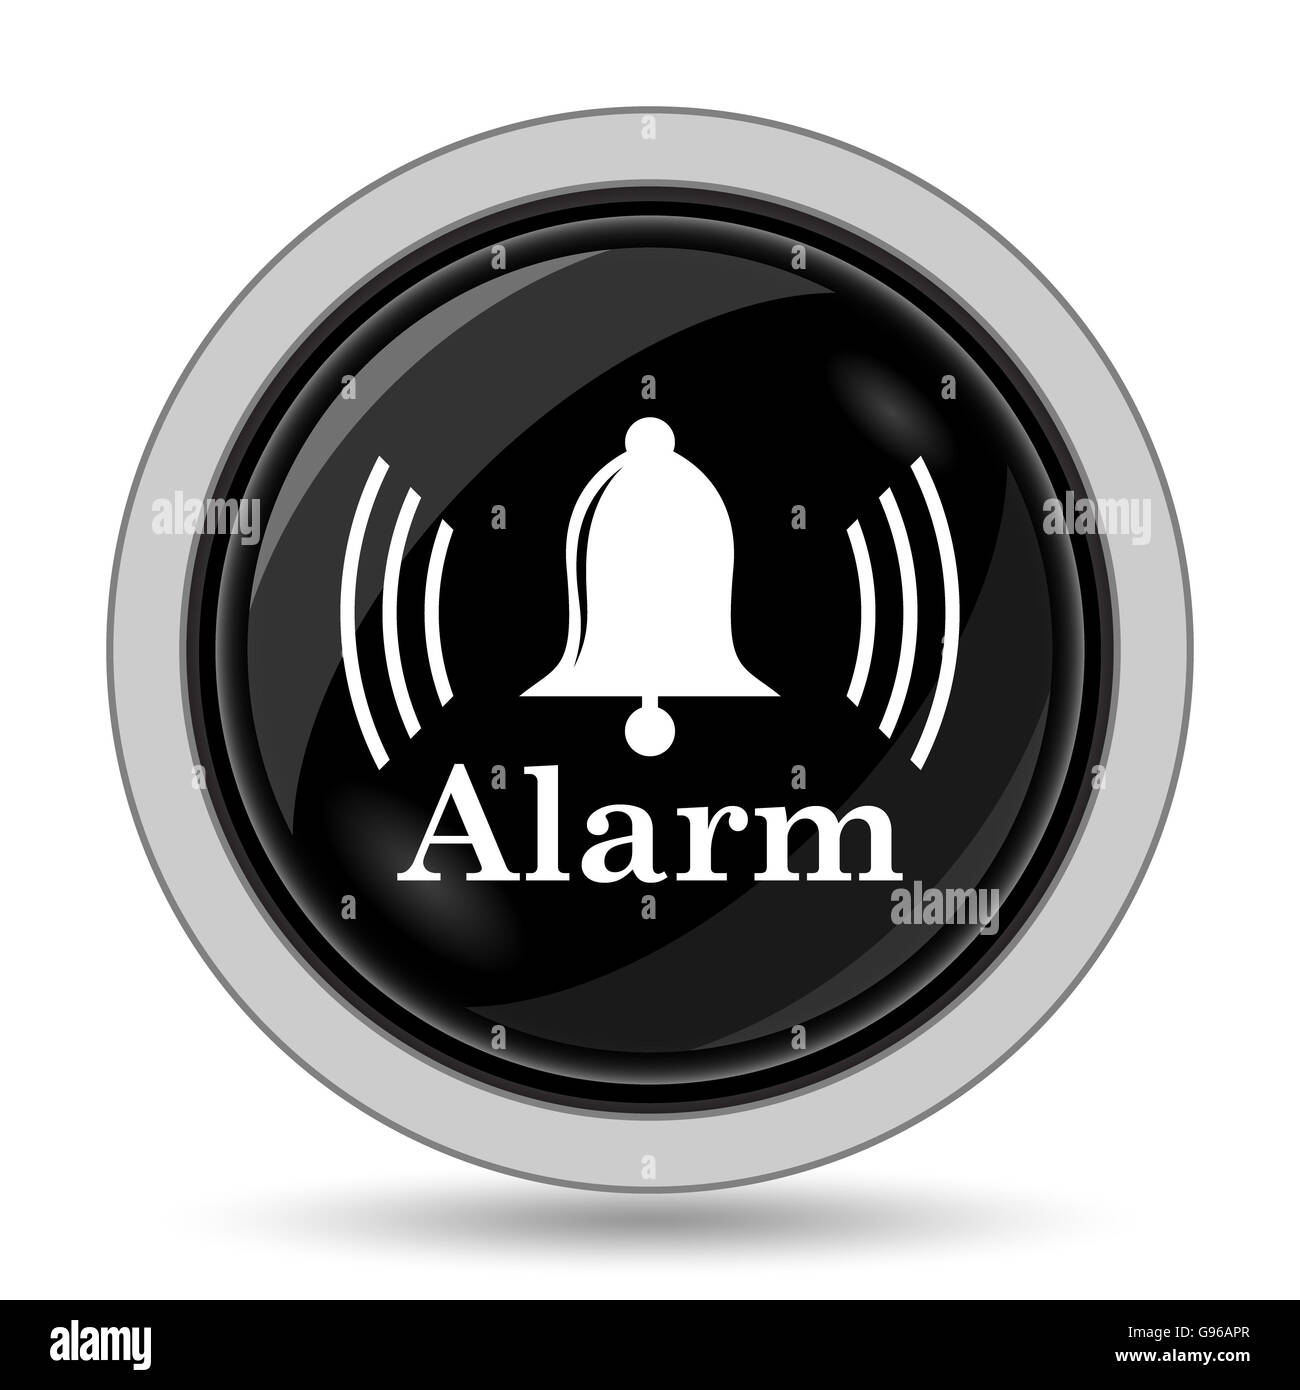 Alarm icon. Internet button on white background. - Stock Image